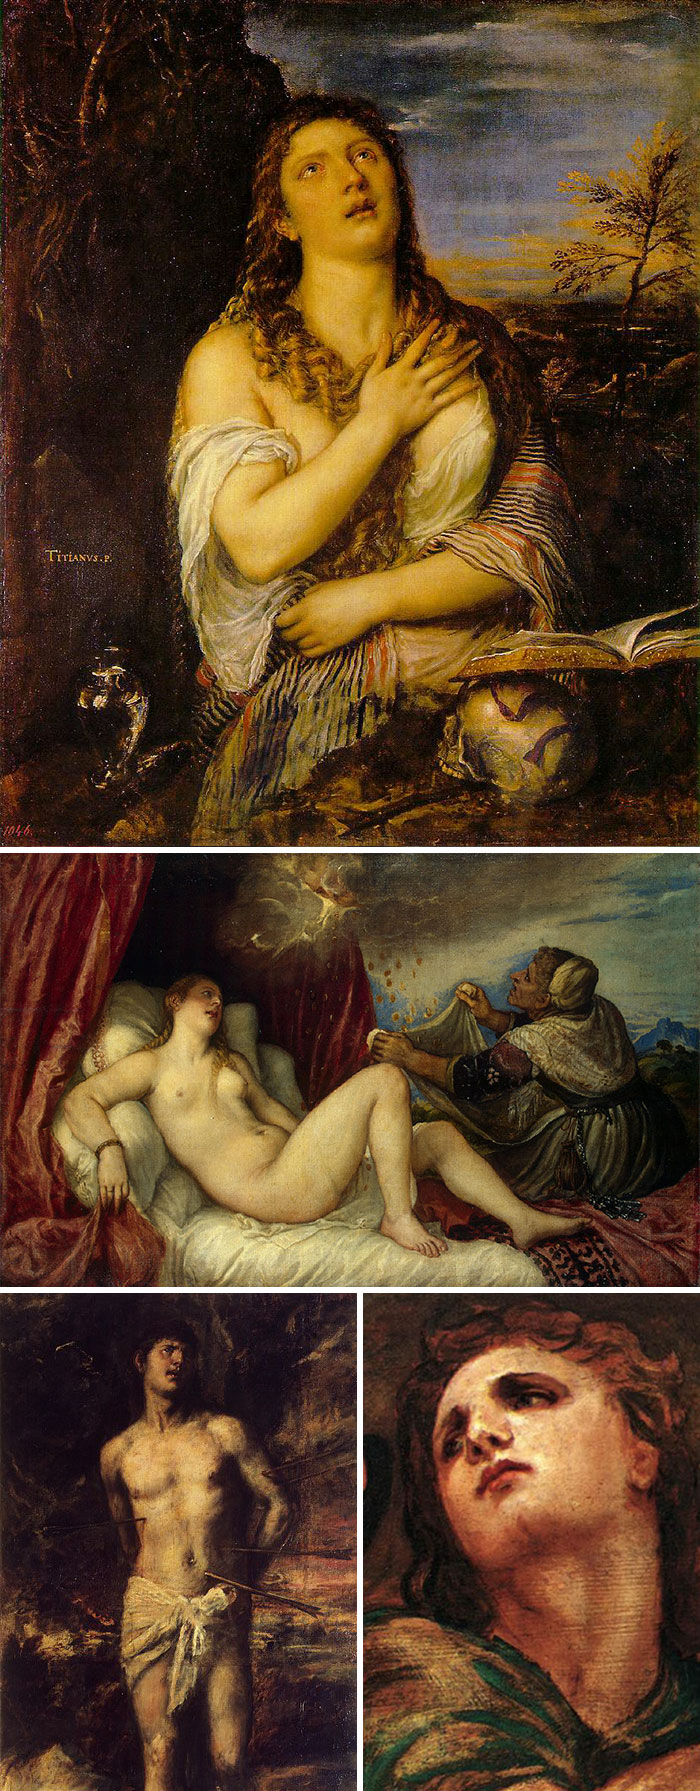 If The Images Have A Dark Background And Everyone Has Tortured Expressions On Their Faces, It's Titian